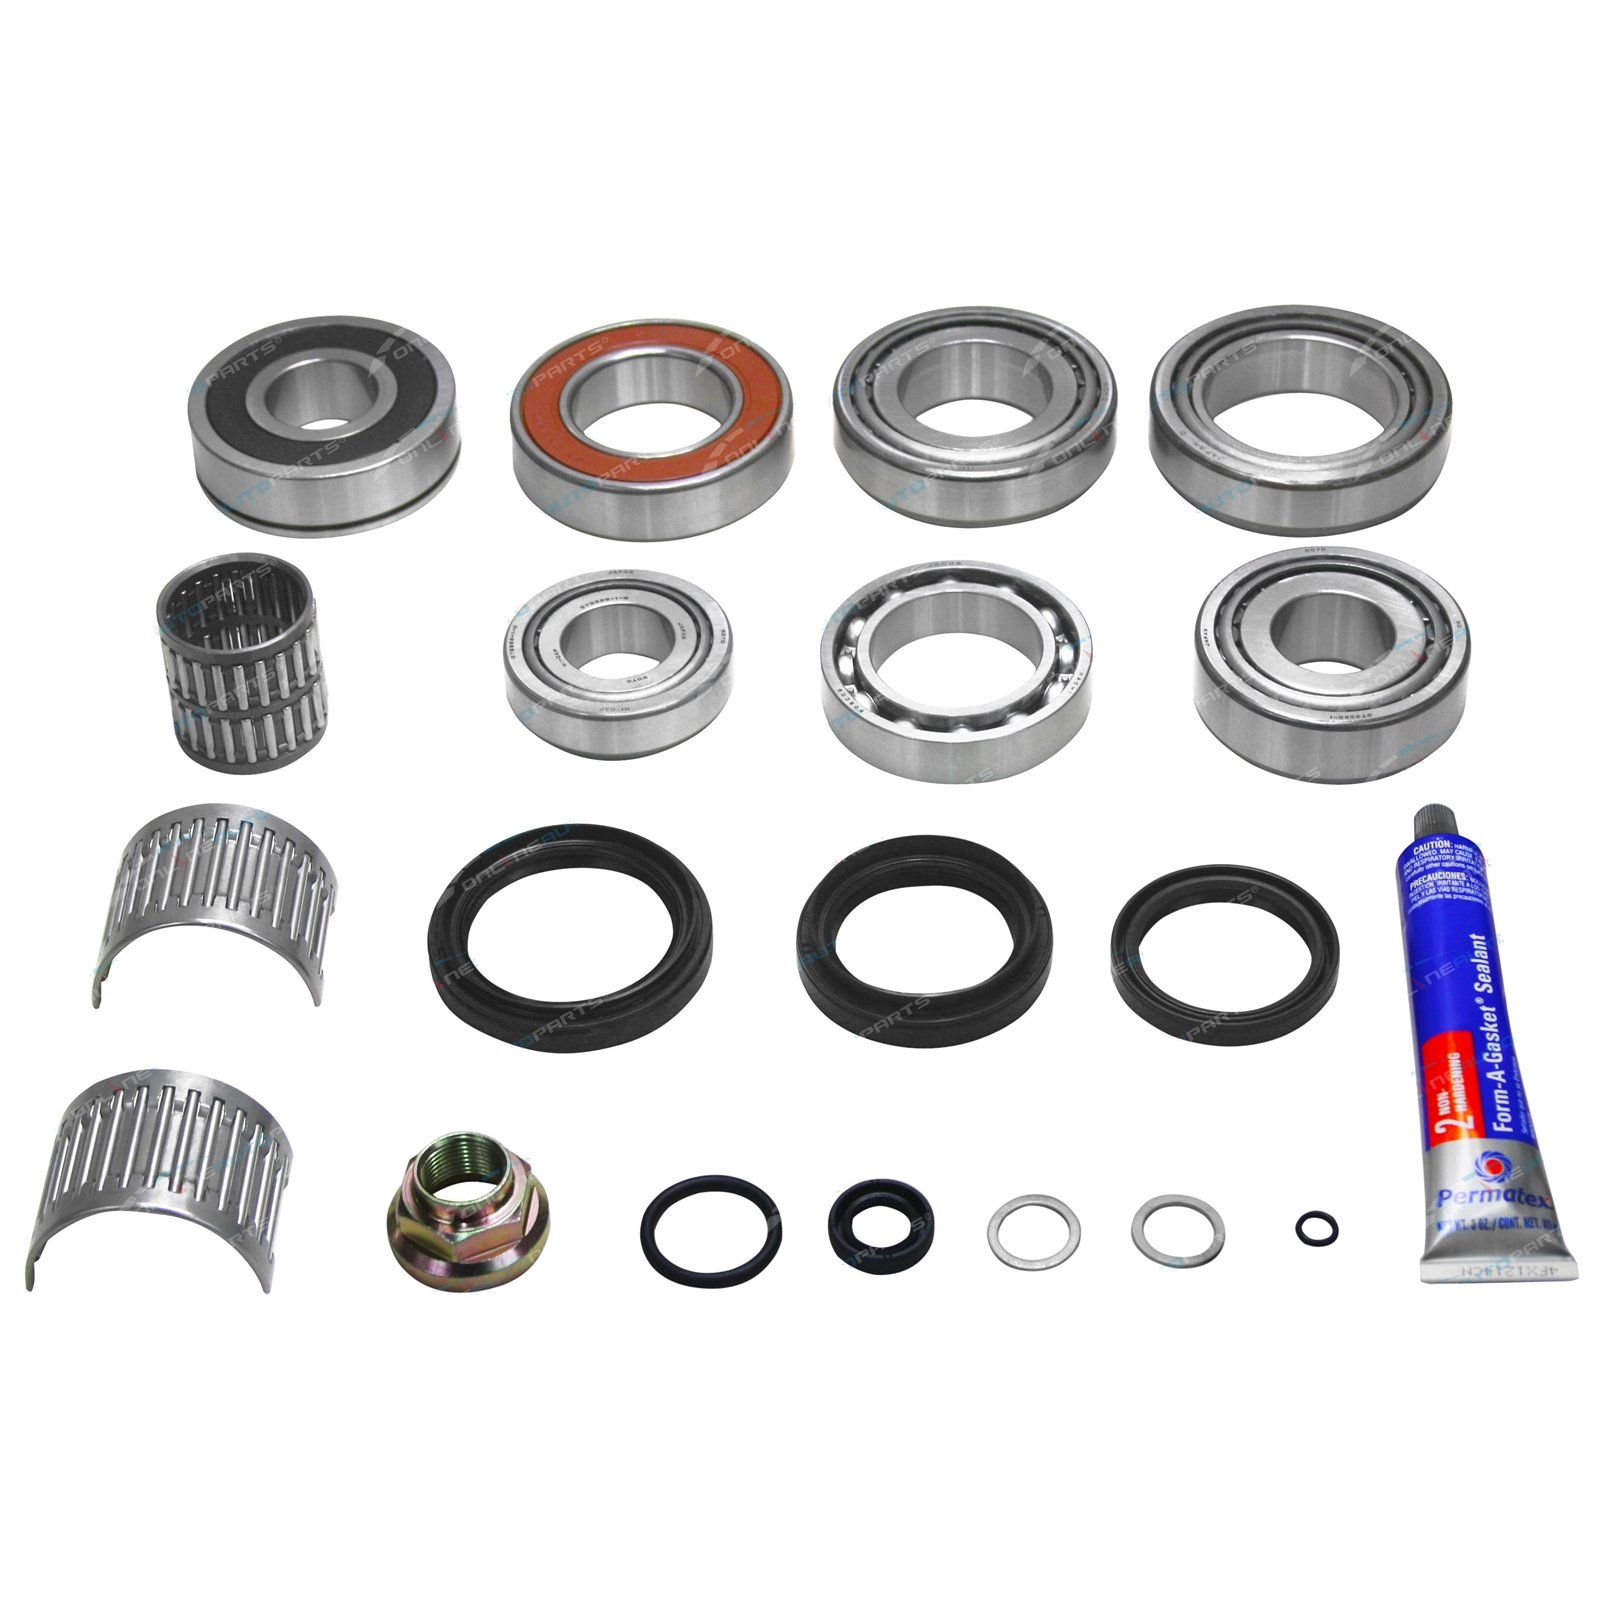 HF2A Transfer Case Rebuild Kit suits Landcruiser 80 Series HDJ80 HZJ80  FZJ80 Constant 4wd non viscous